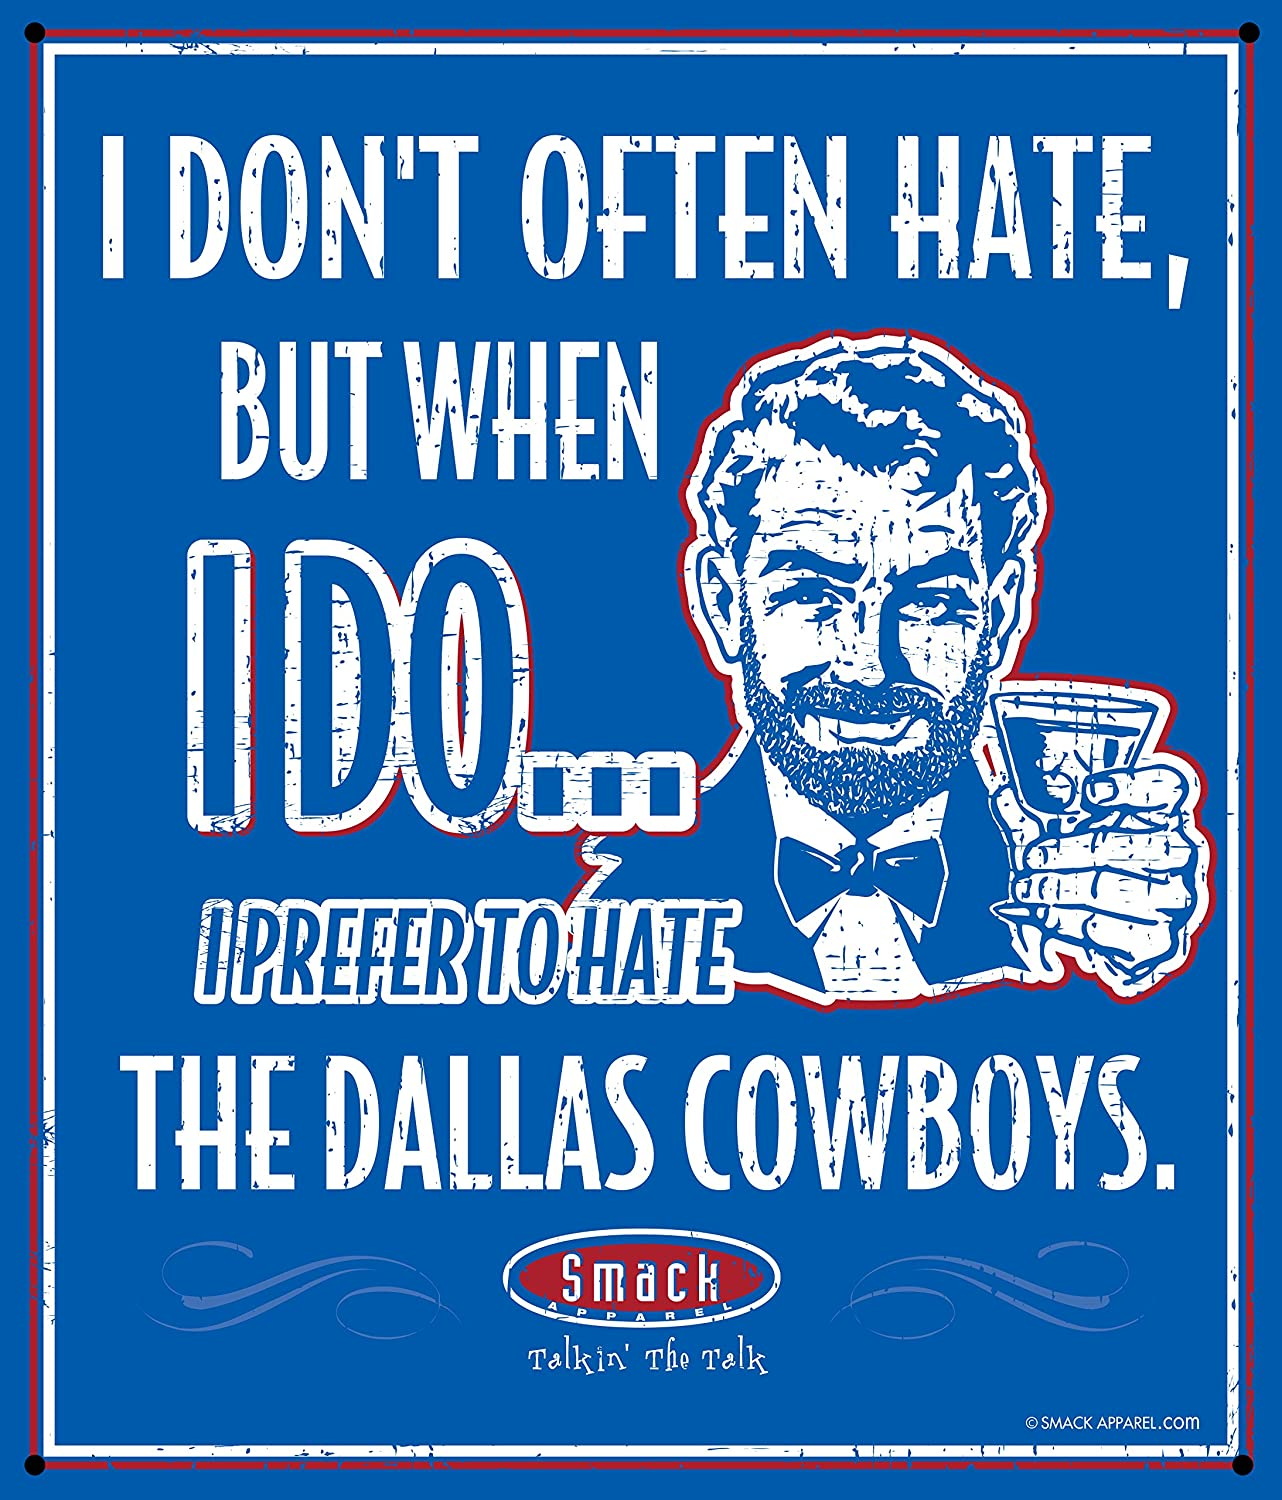 Smack Apparel NY Football Fans I Prefer to Hate The Dallas Cowboys 12 X 14 Metal Man Cave Sign